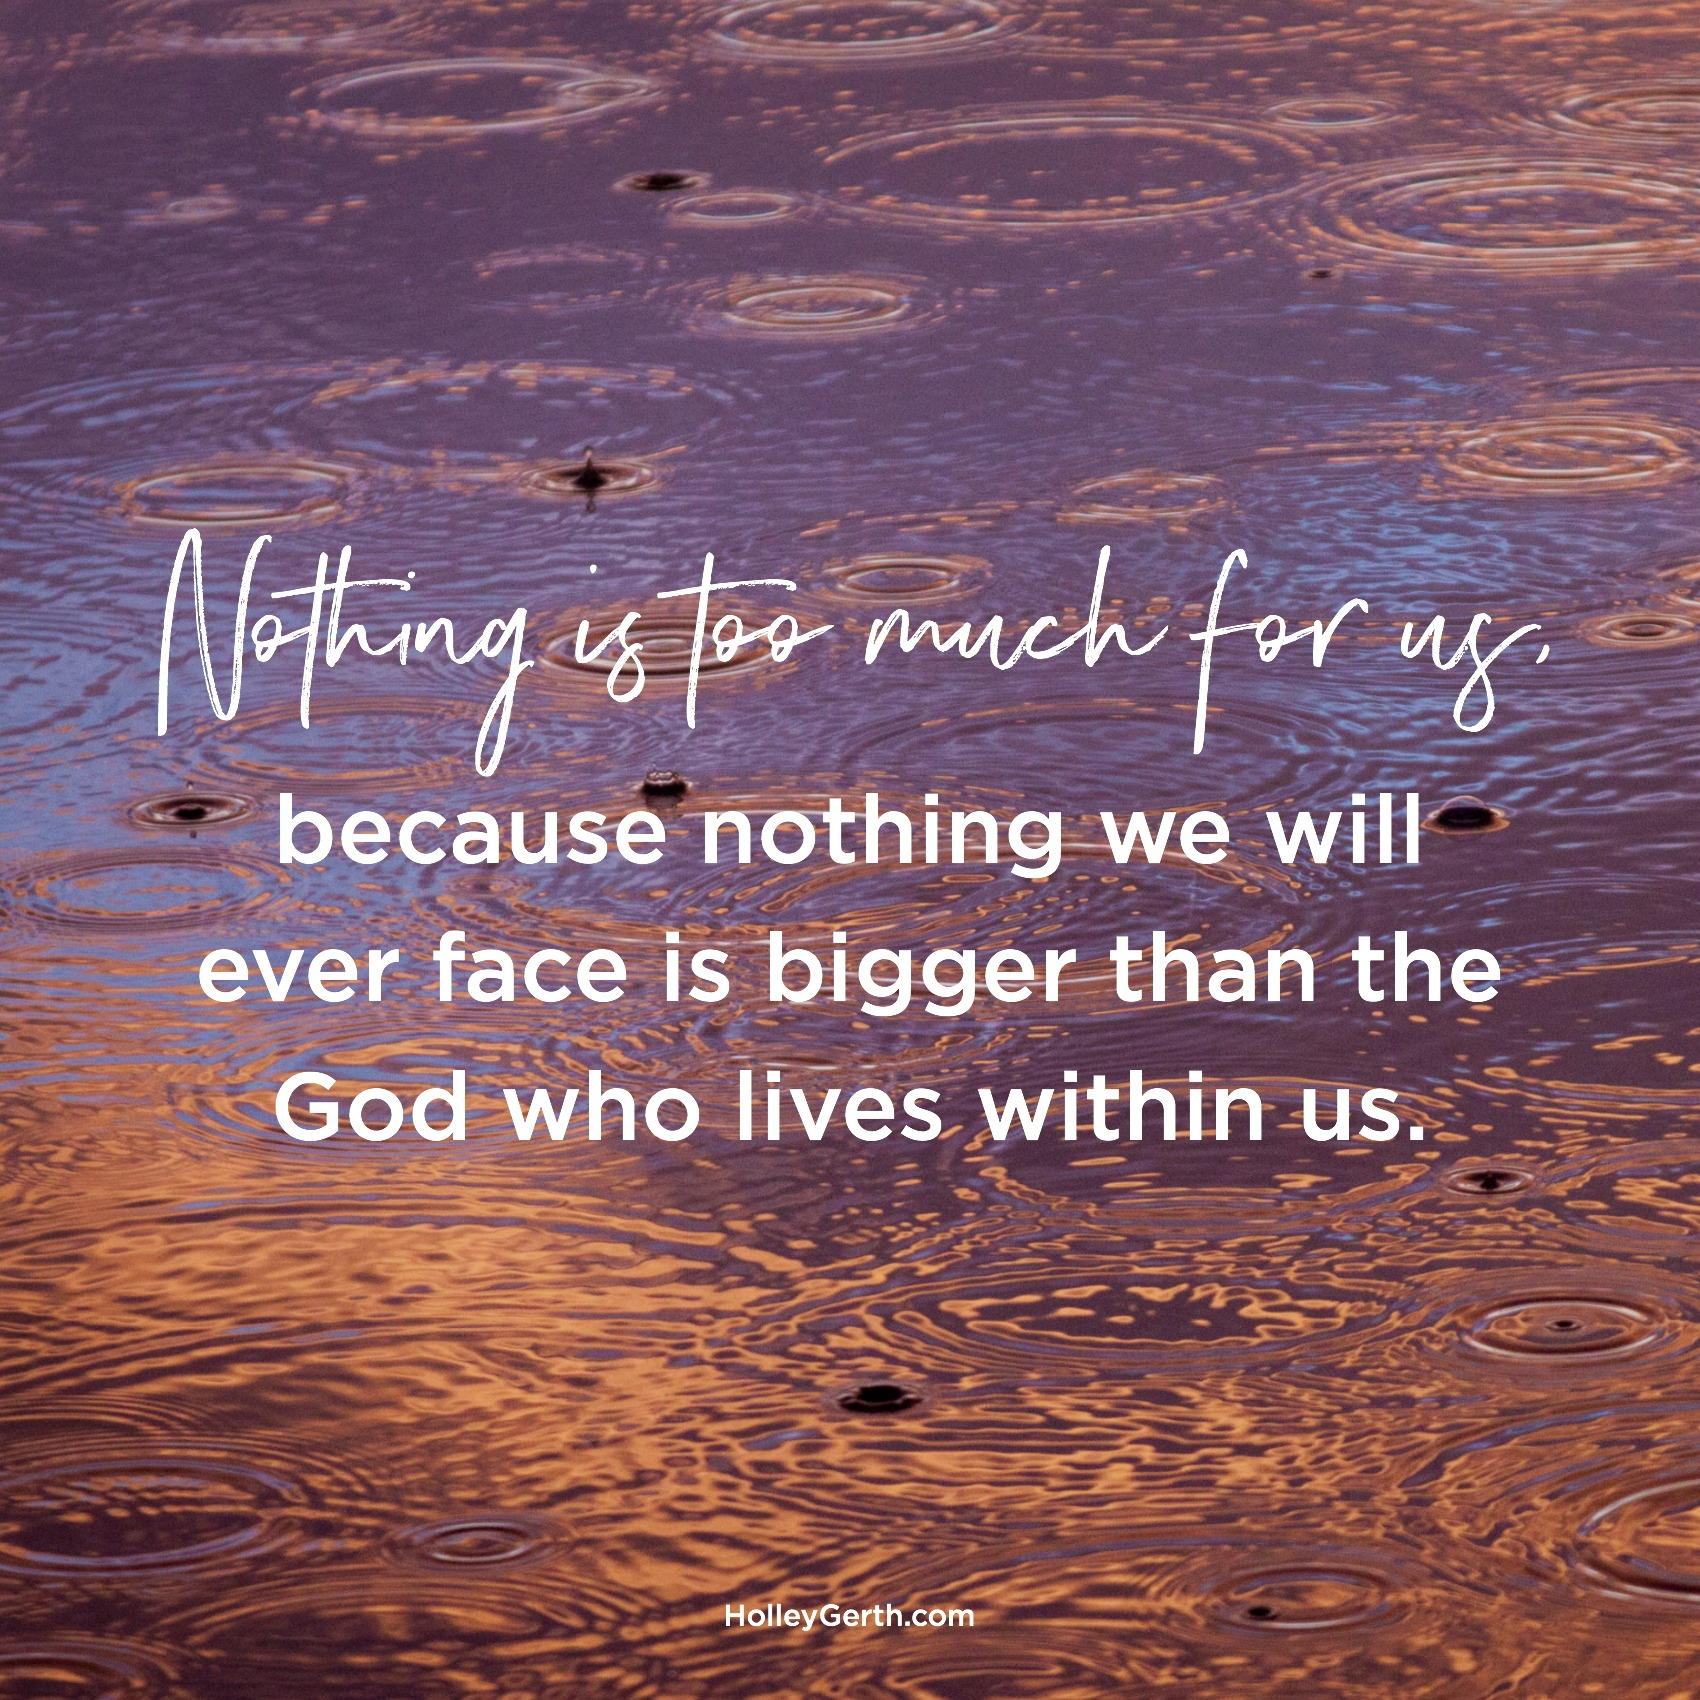 Nothing is too much for you, because nothing you will ever face is bigger than the God who lives within you.